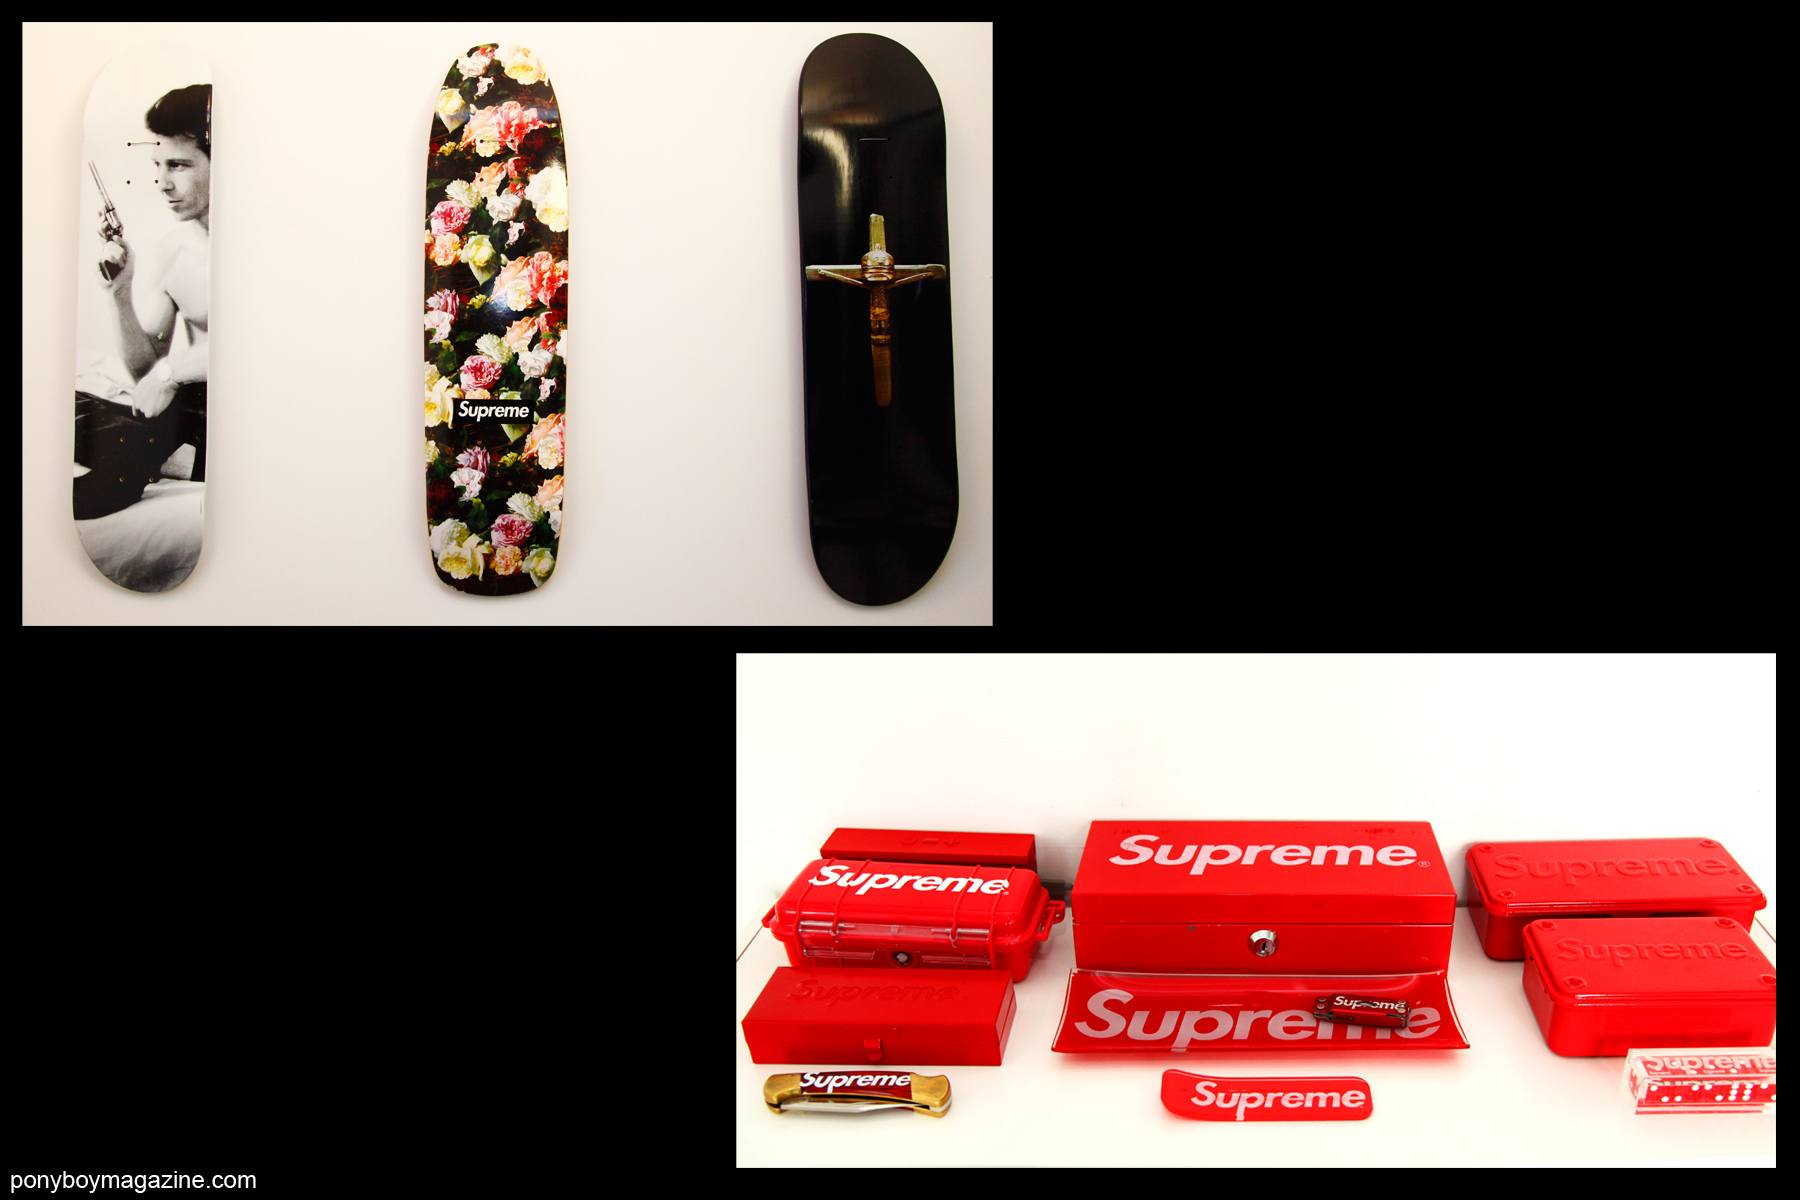 Supreme products owned by editor Peter Davis. Photographed by Alexander Thompson for Ponyboy Magazine.